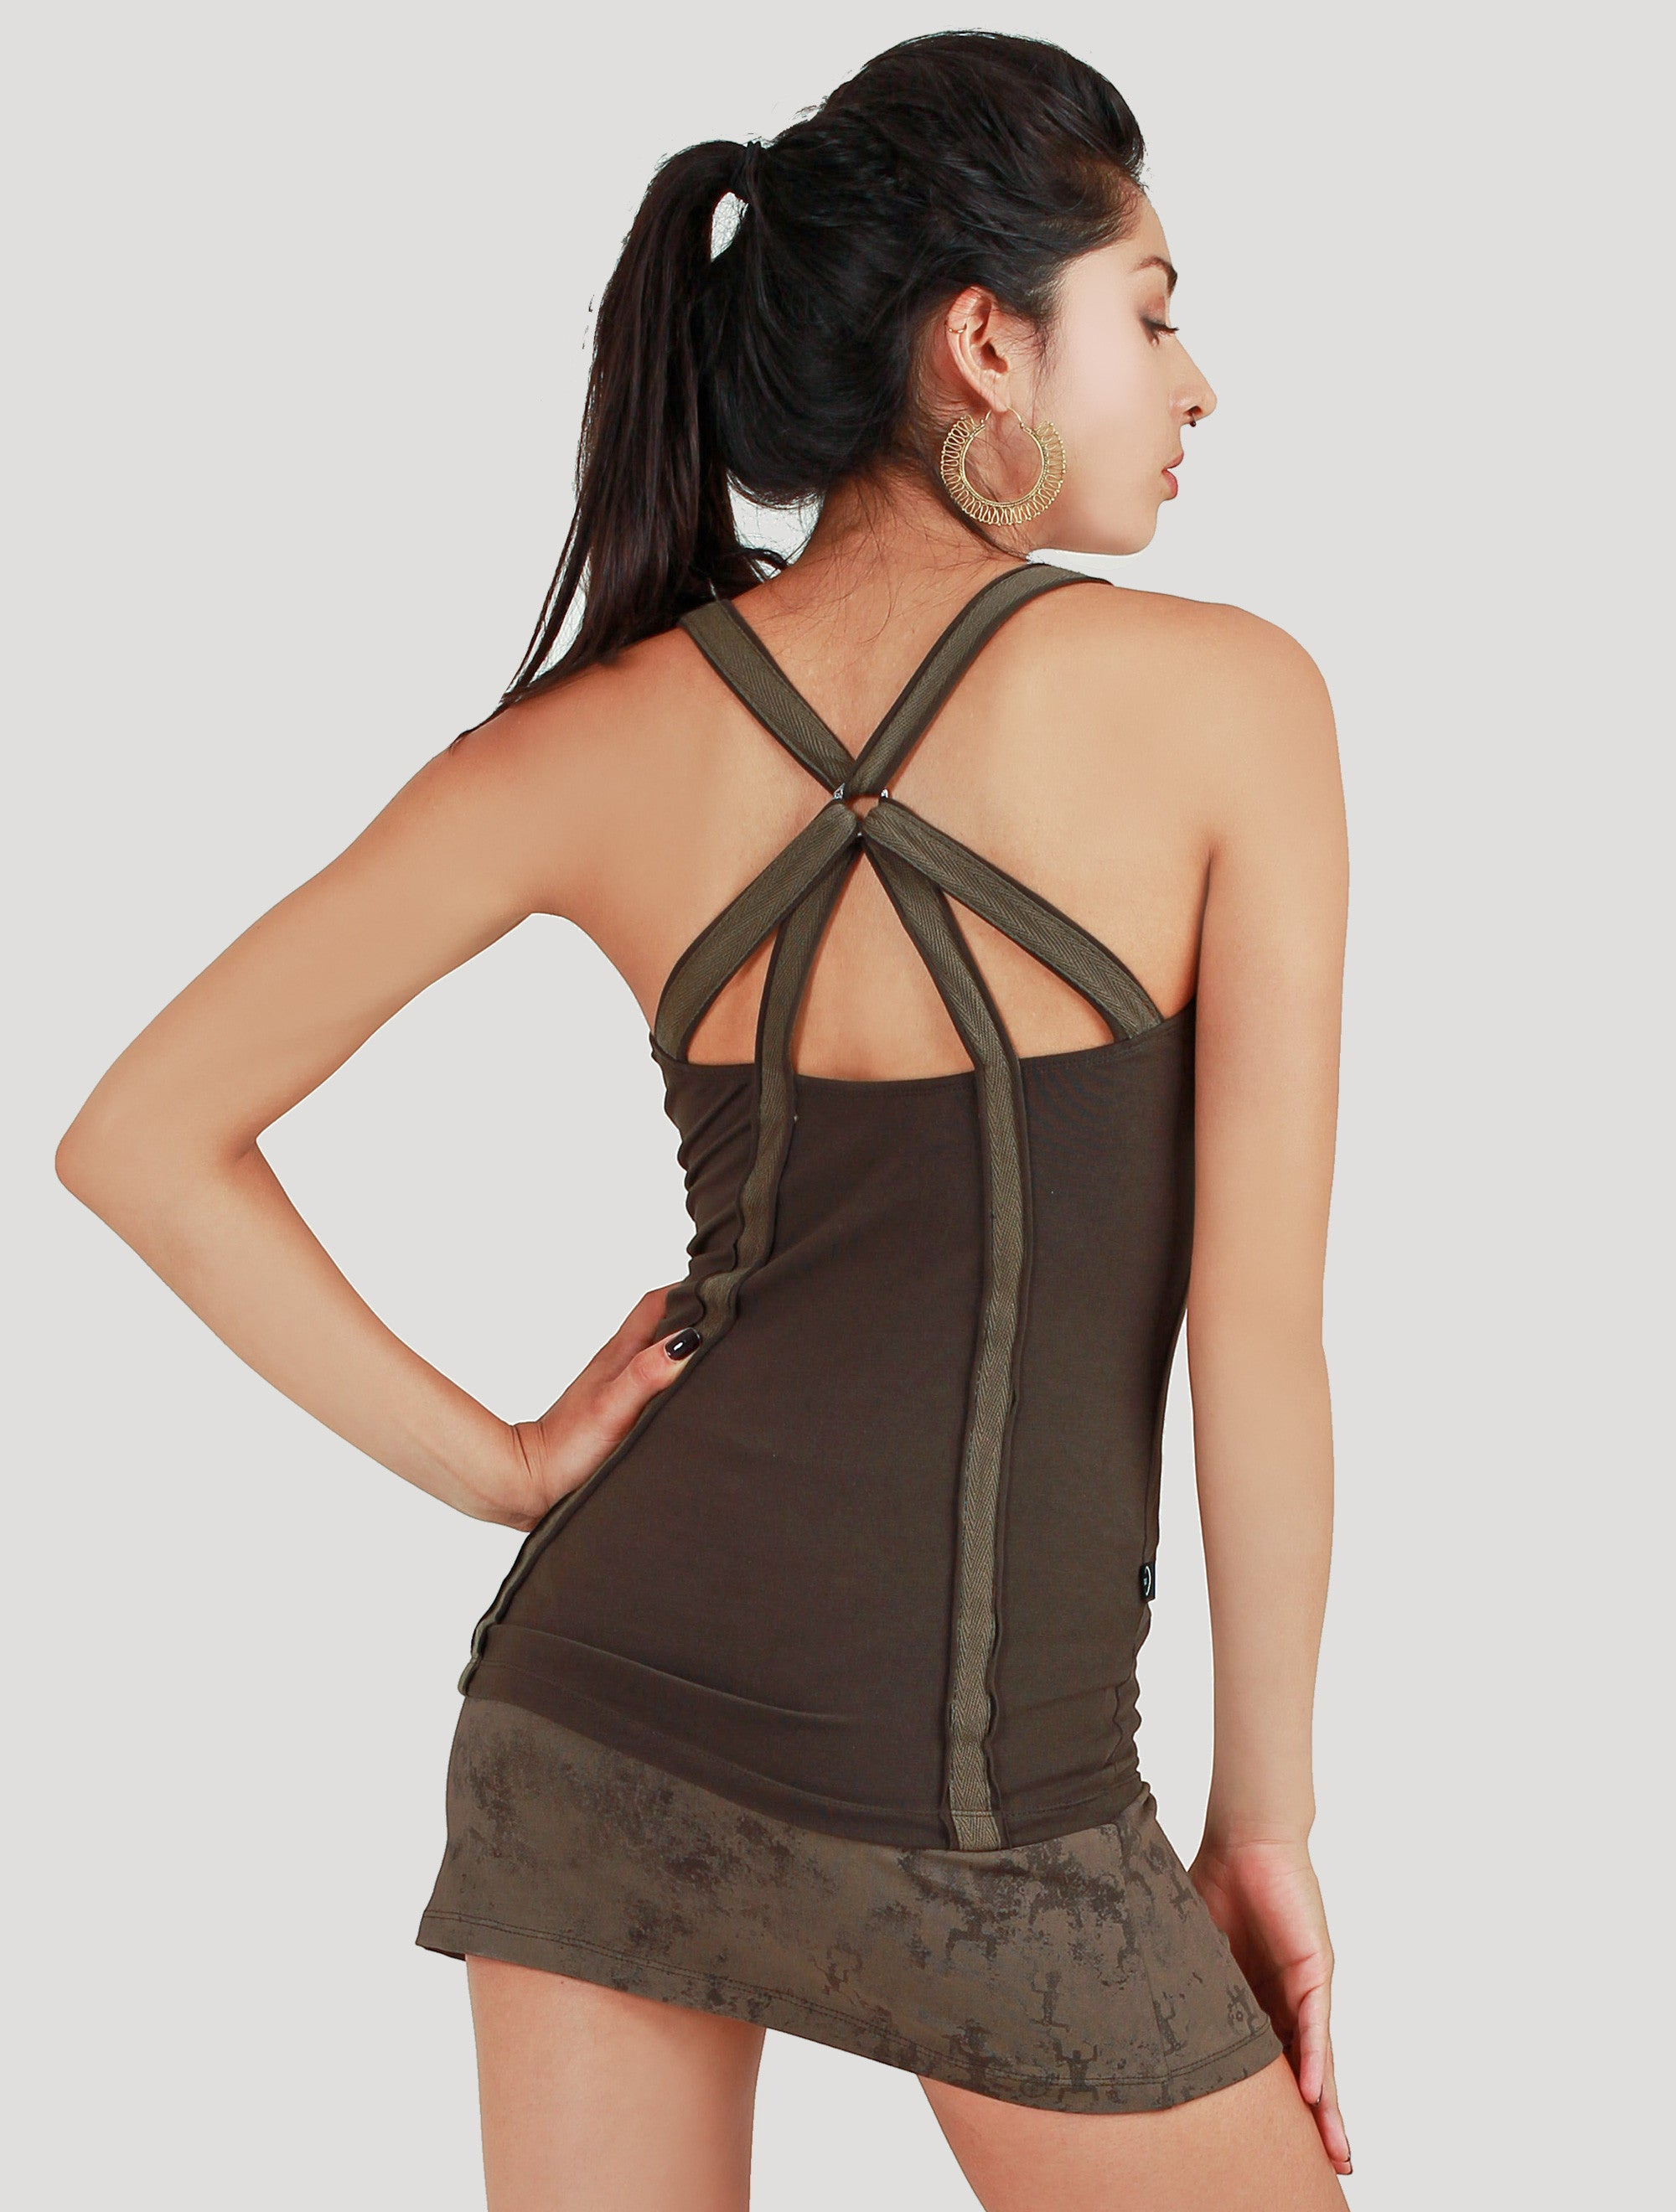 Strap Singlet Sleeveless Top